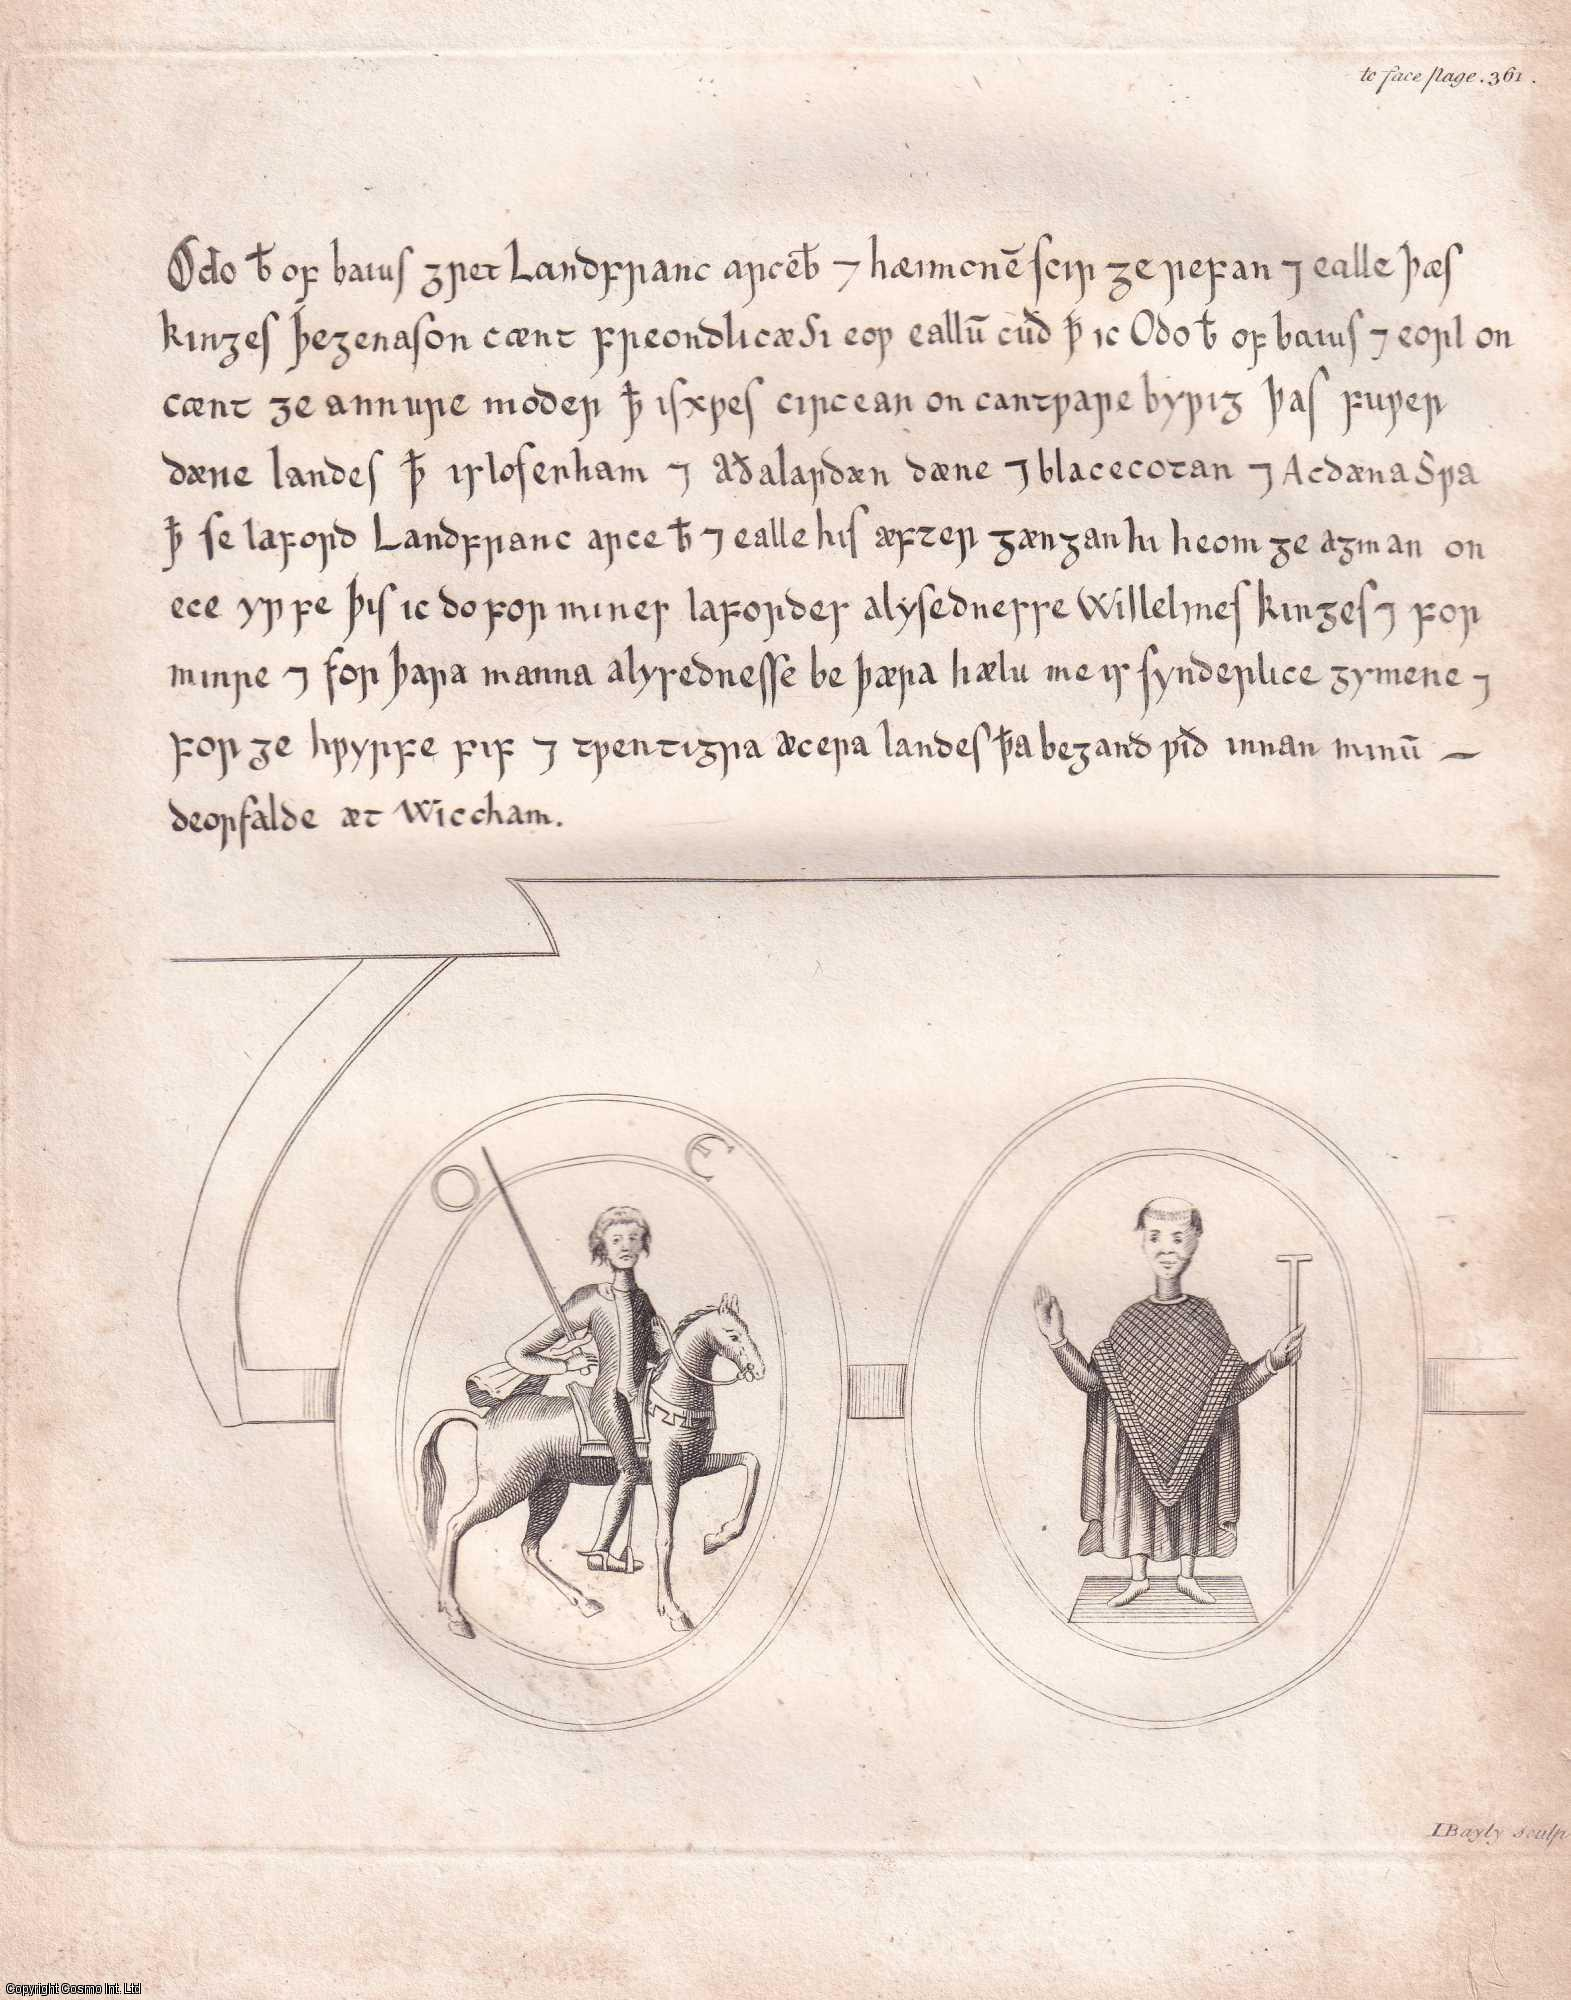 A Copy of a Deed in Latin and Saxon, of Odo, Bishop of Baieux, half Brother of William the Conqueror; with some Observations thereon., Samuel Pegge, A.M.